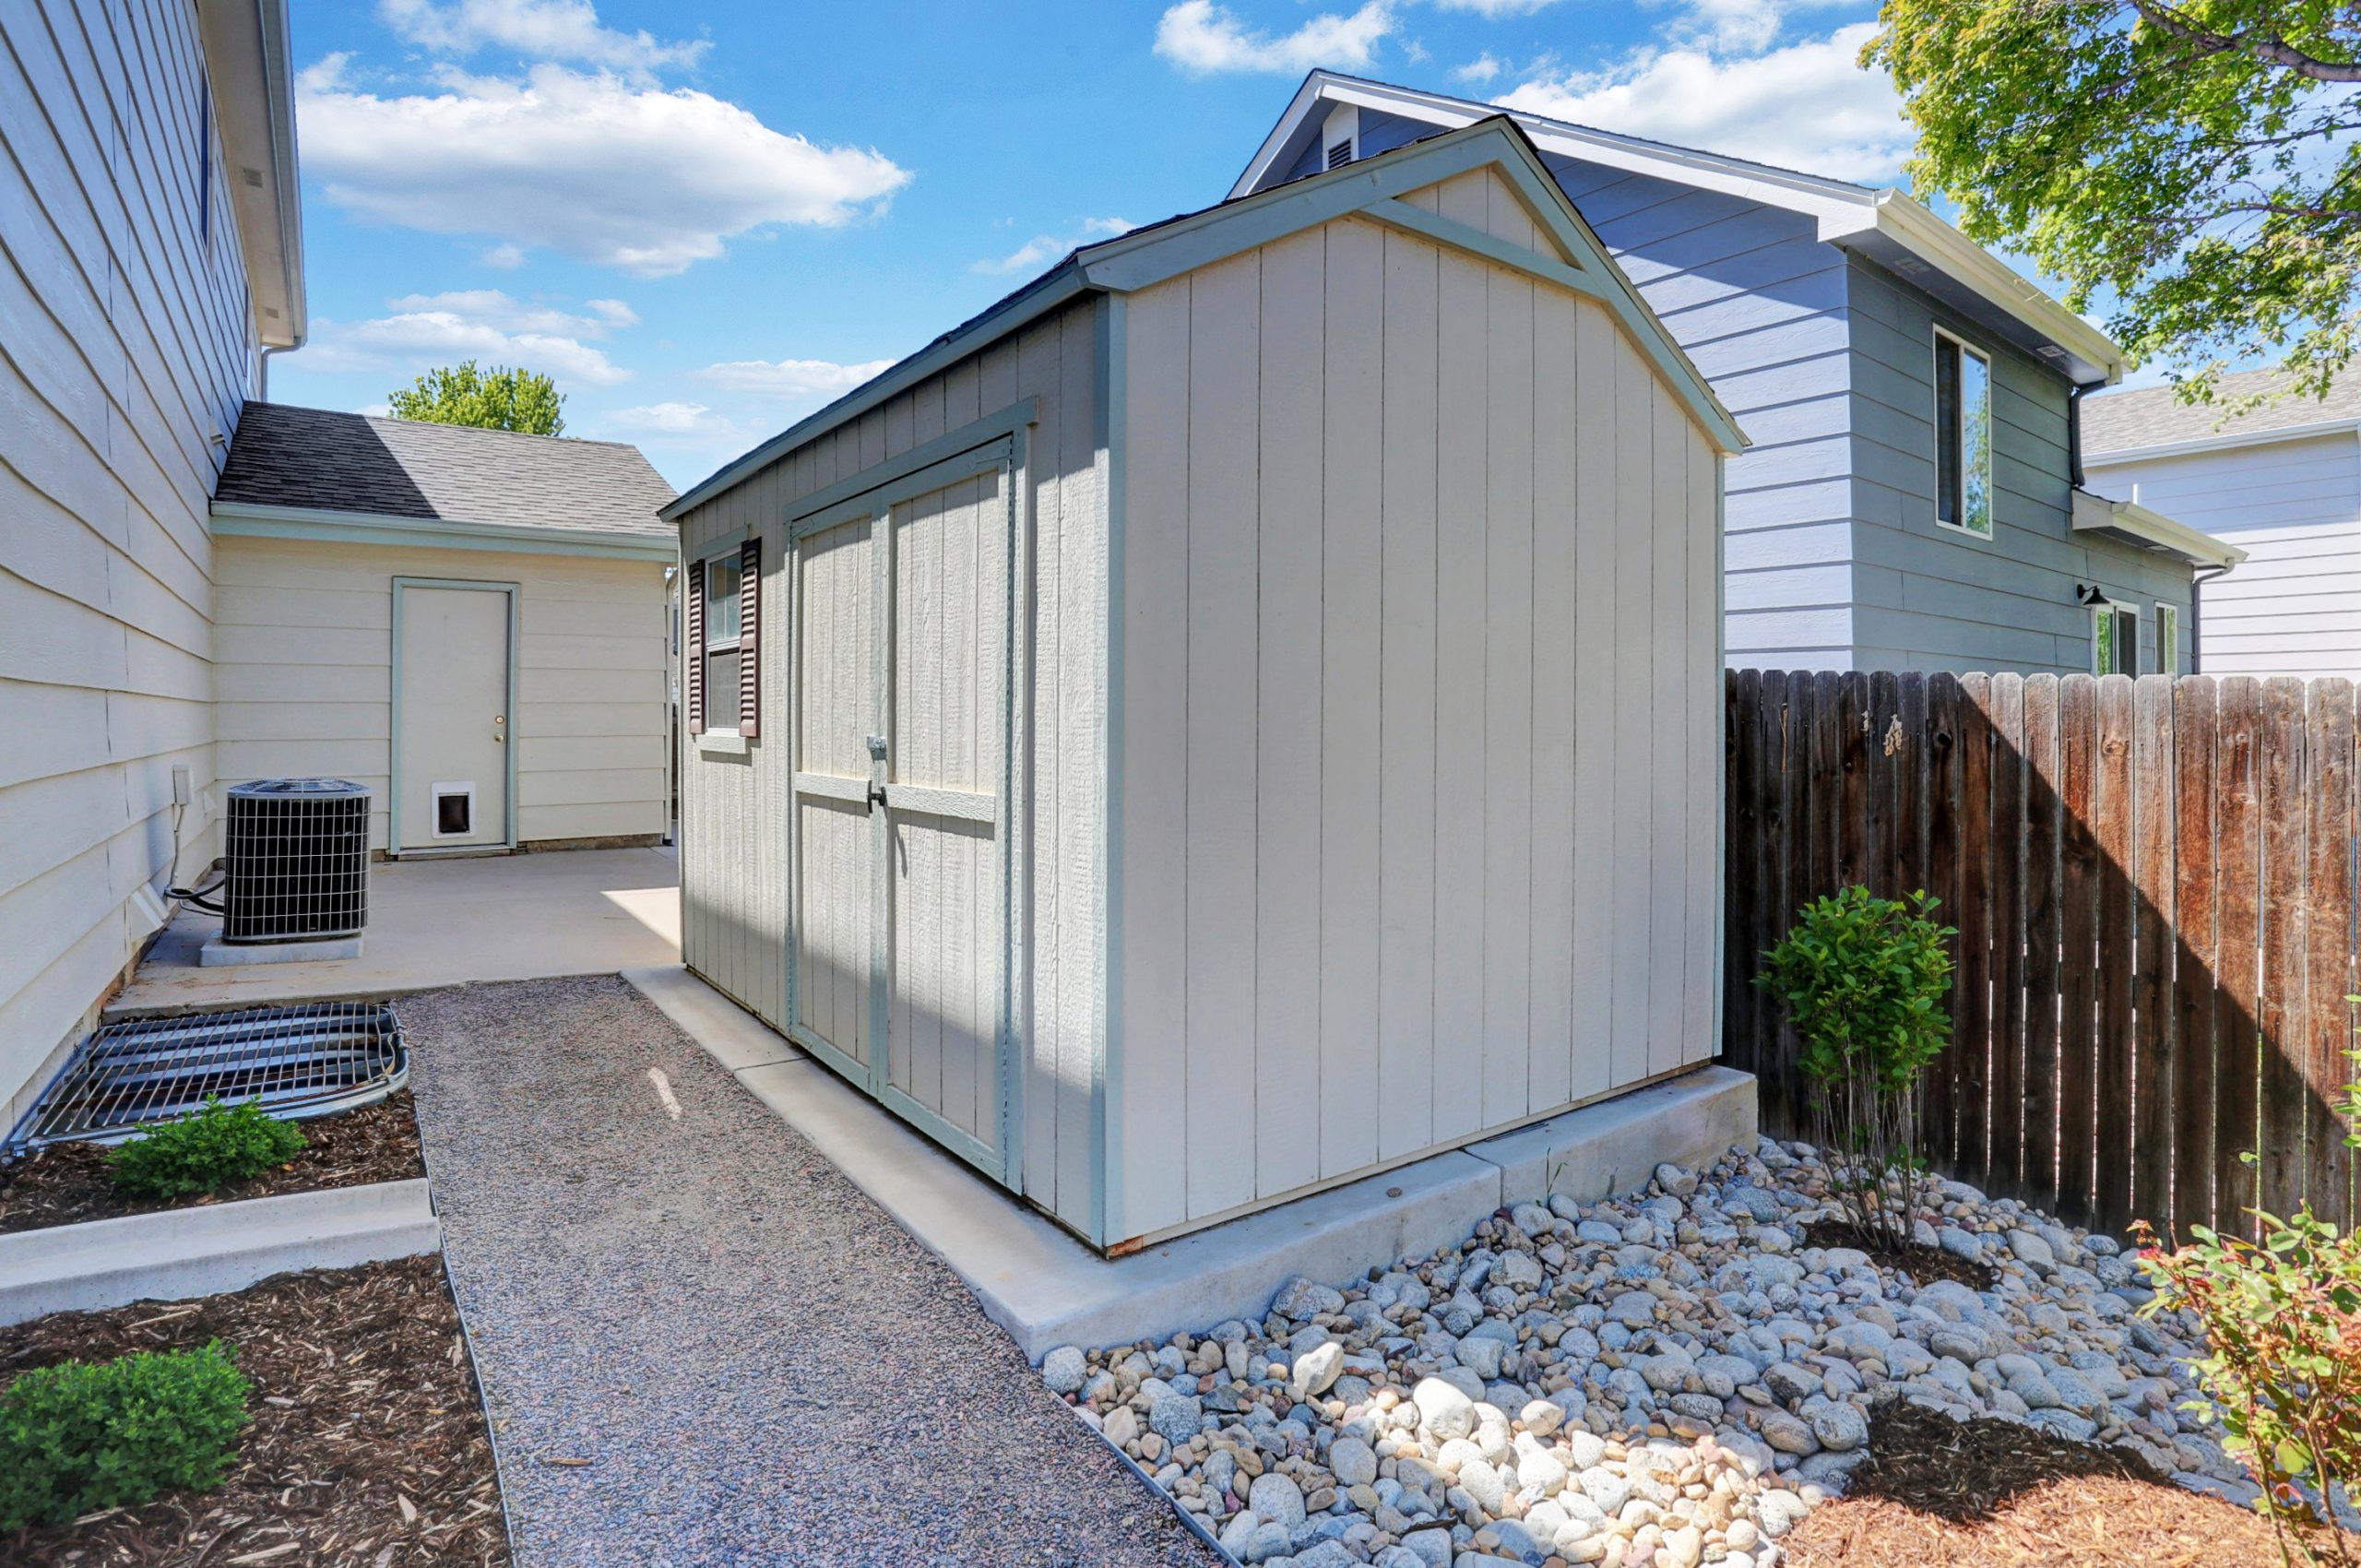 REAL ESTATE LISTING: 10502 Falcon St Firestone Garden Shed